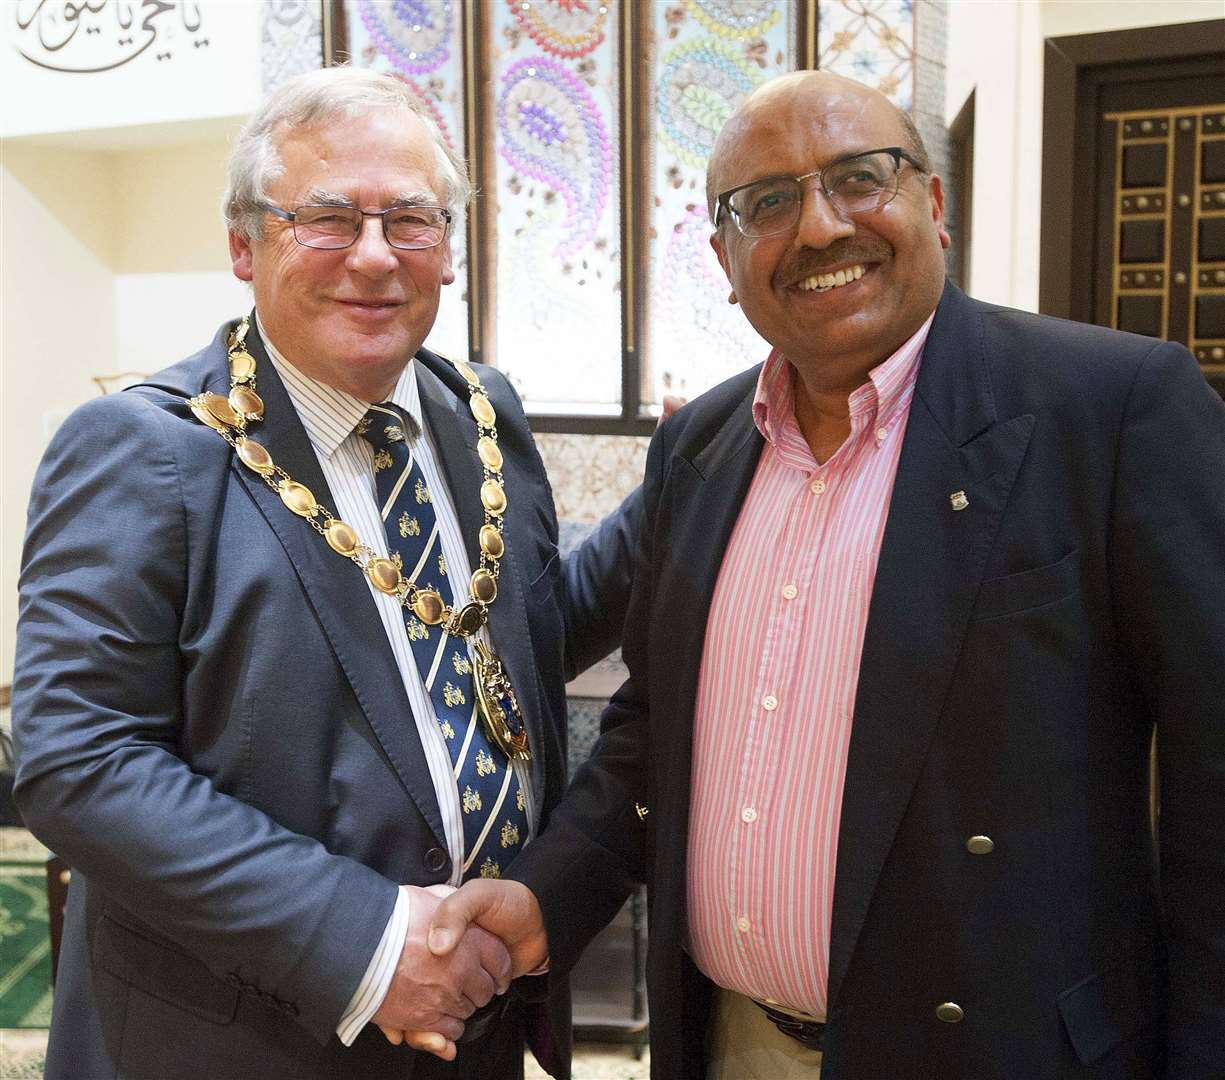 West Norfolk Islamic Association president Azam Gabbair, pictured here, right, with former borough mayor Nick Daubney, is worried about people from black and ethnic minority groups being persuaded not to have a vaccine.